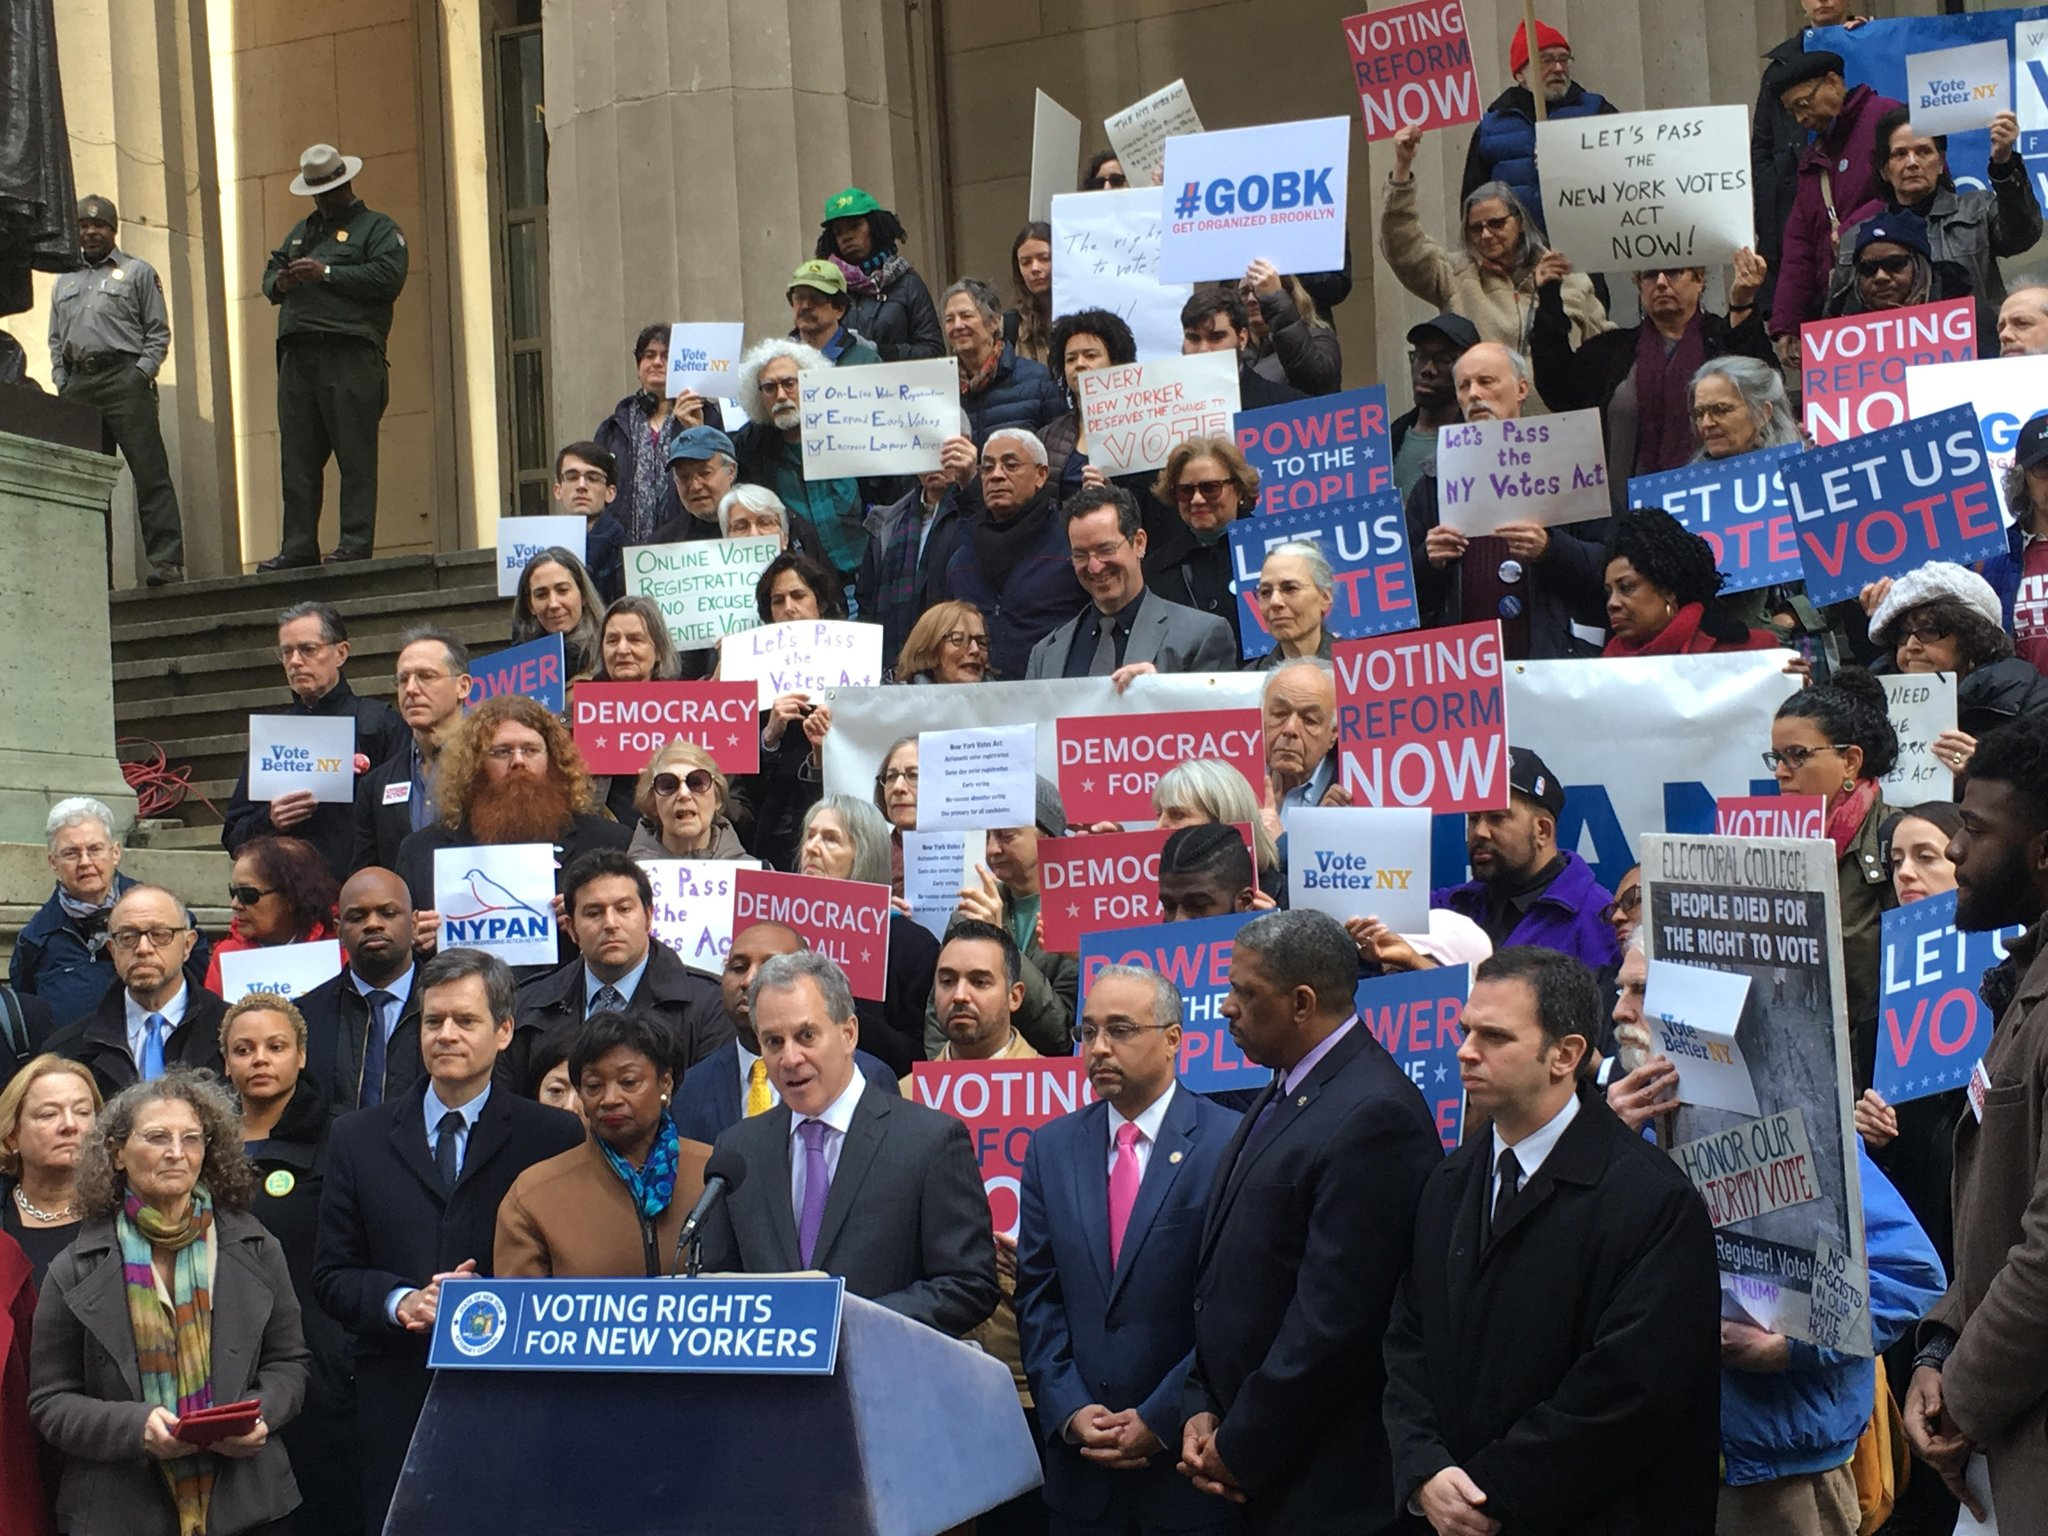 Schneiderman releases voting reform legislation